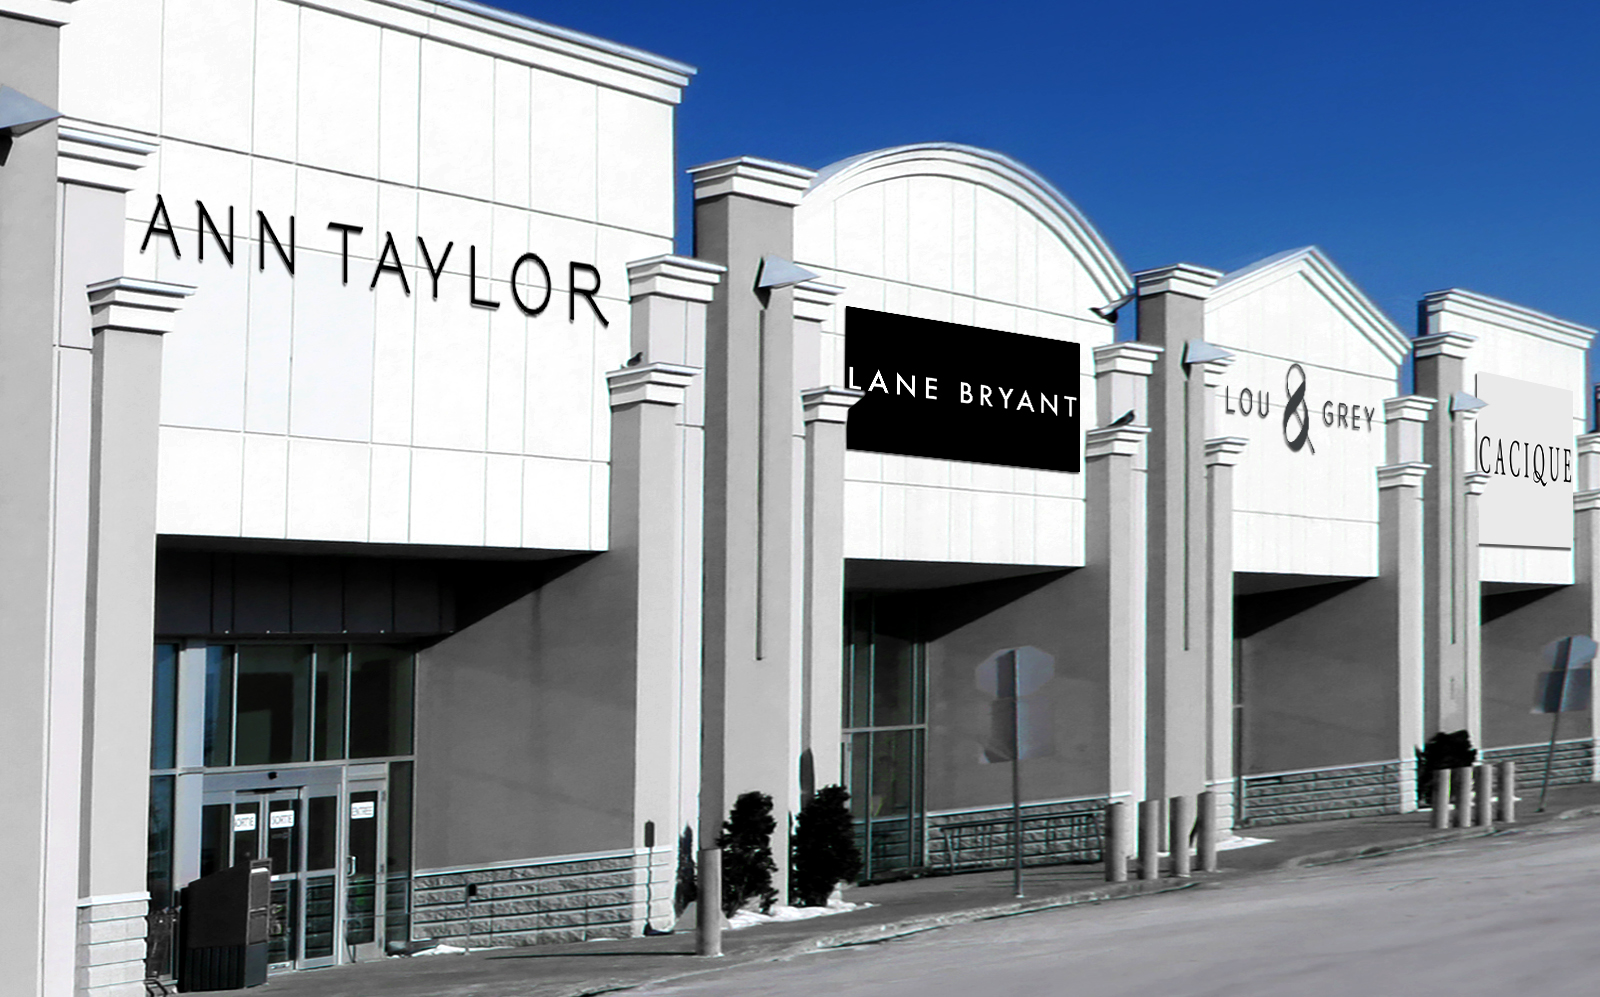 Ascena owns Ann Taylor, Lane Bryant, Lou & Grey and Cacique. (Getty)